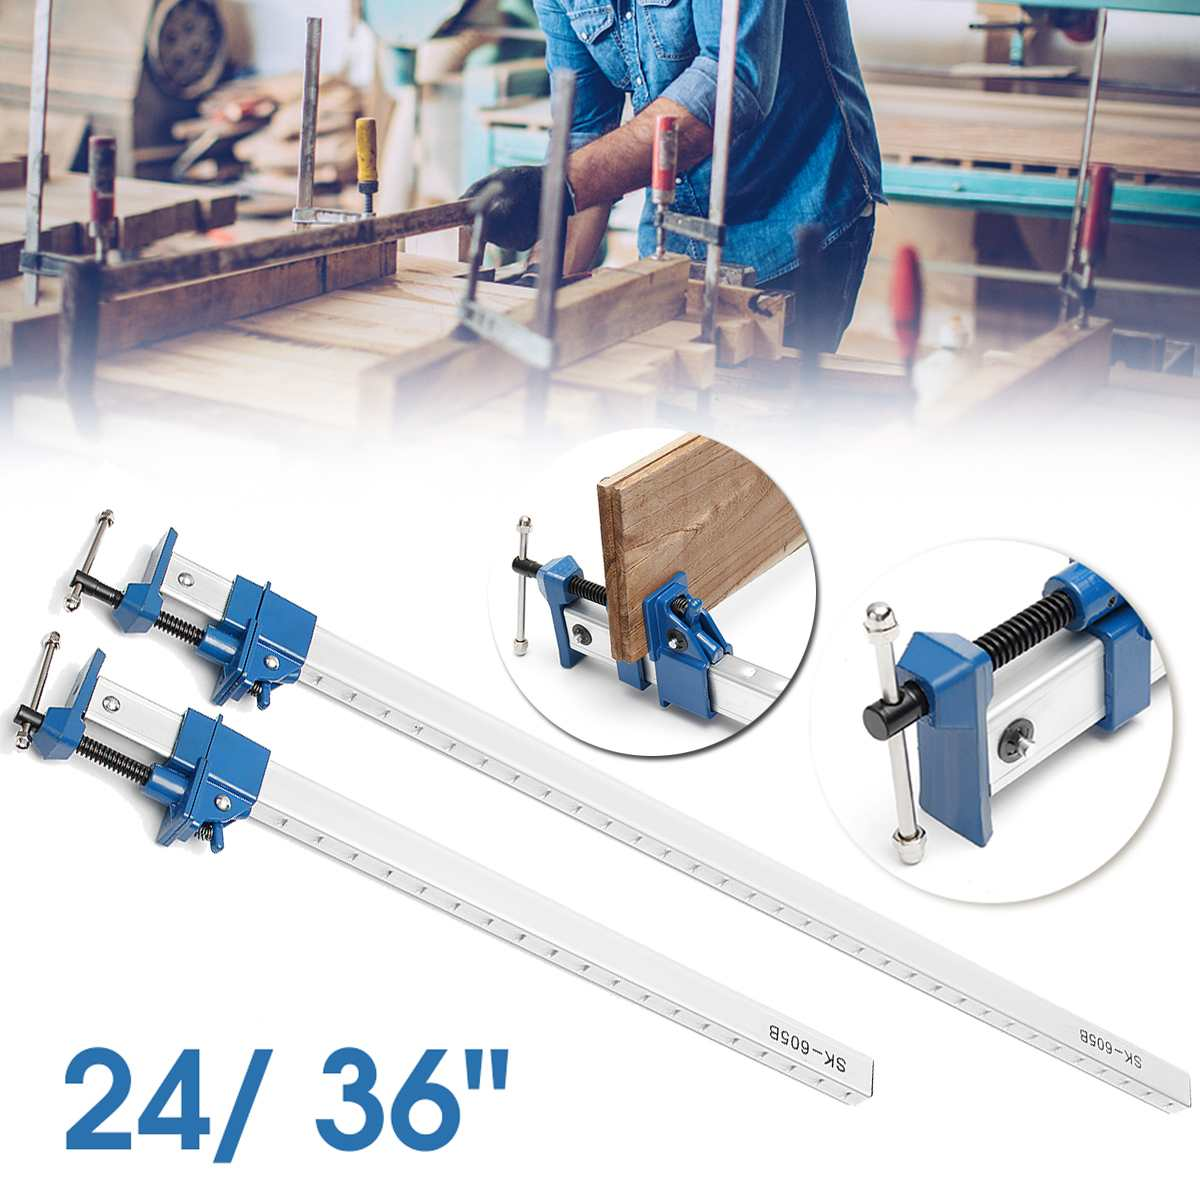 2 Woodworking Carpenter Cabinets Steel Bar F Clamp Quick Release 36/'/' FREE SHIPP